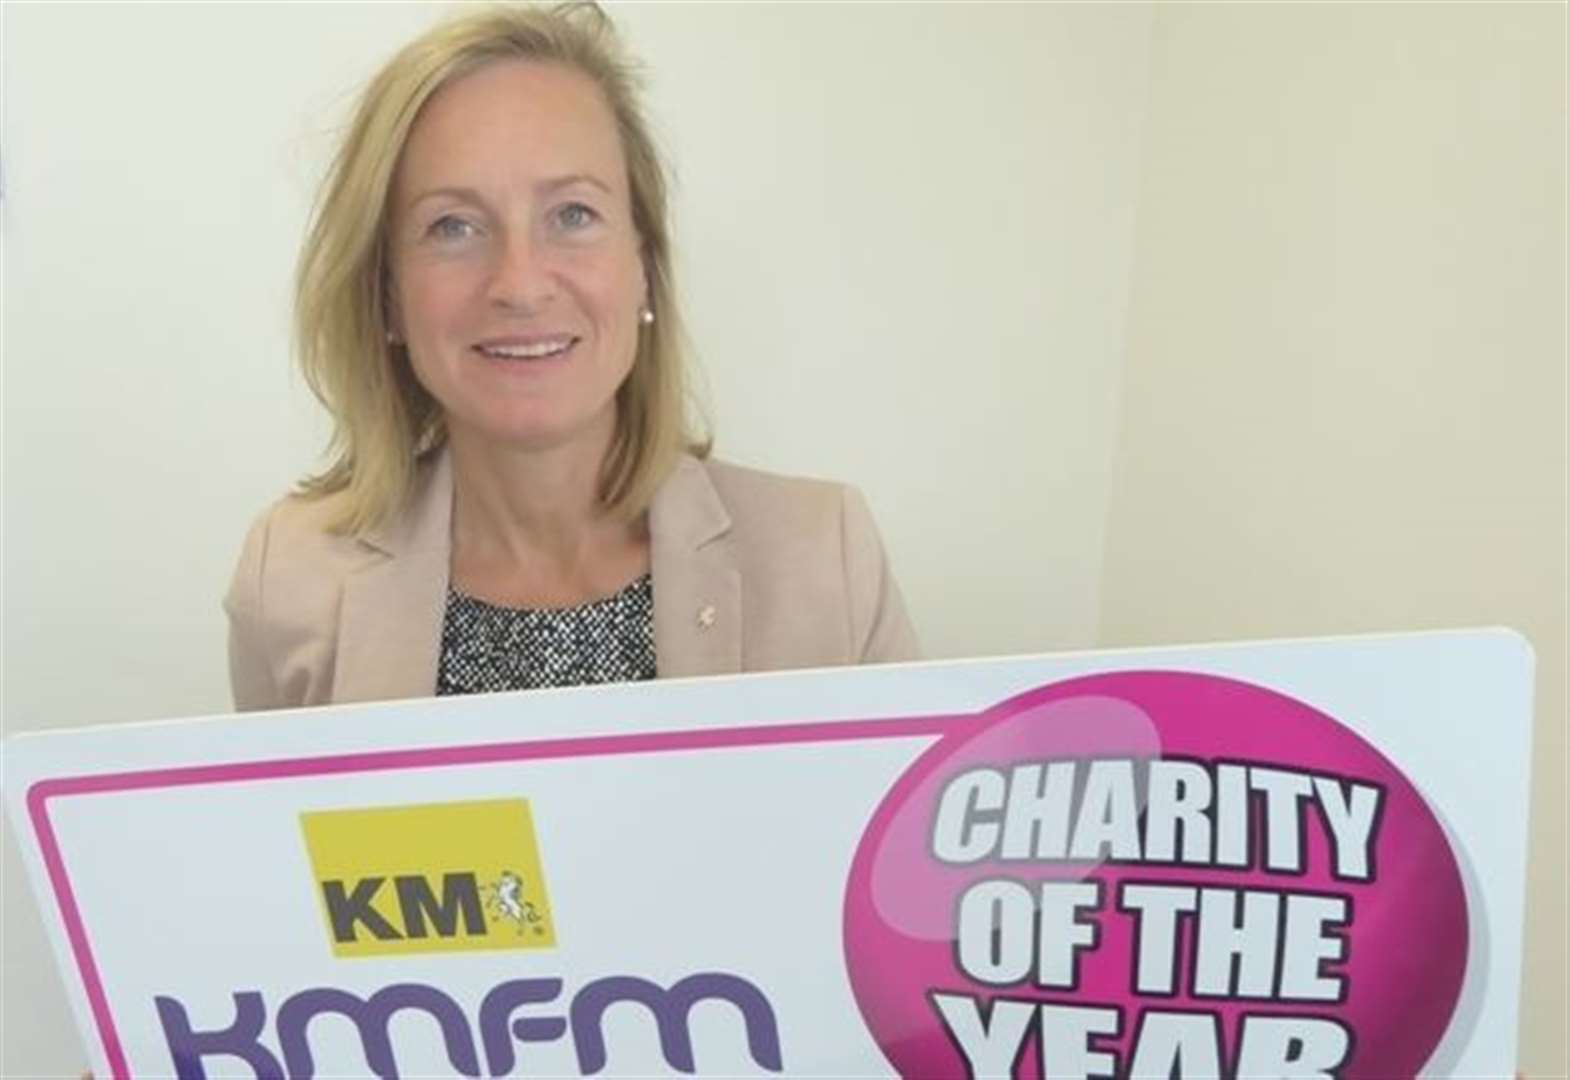 Golden fundraising opportunities for KM charity partners